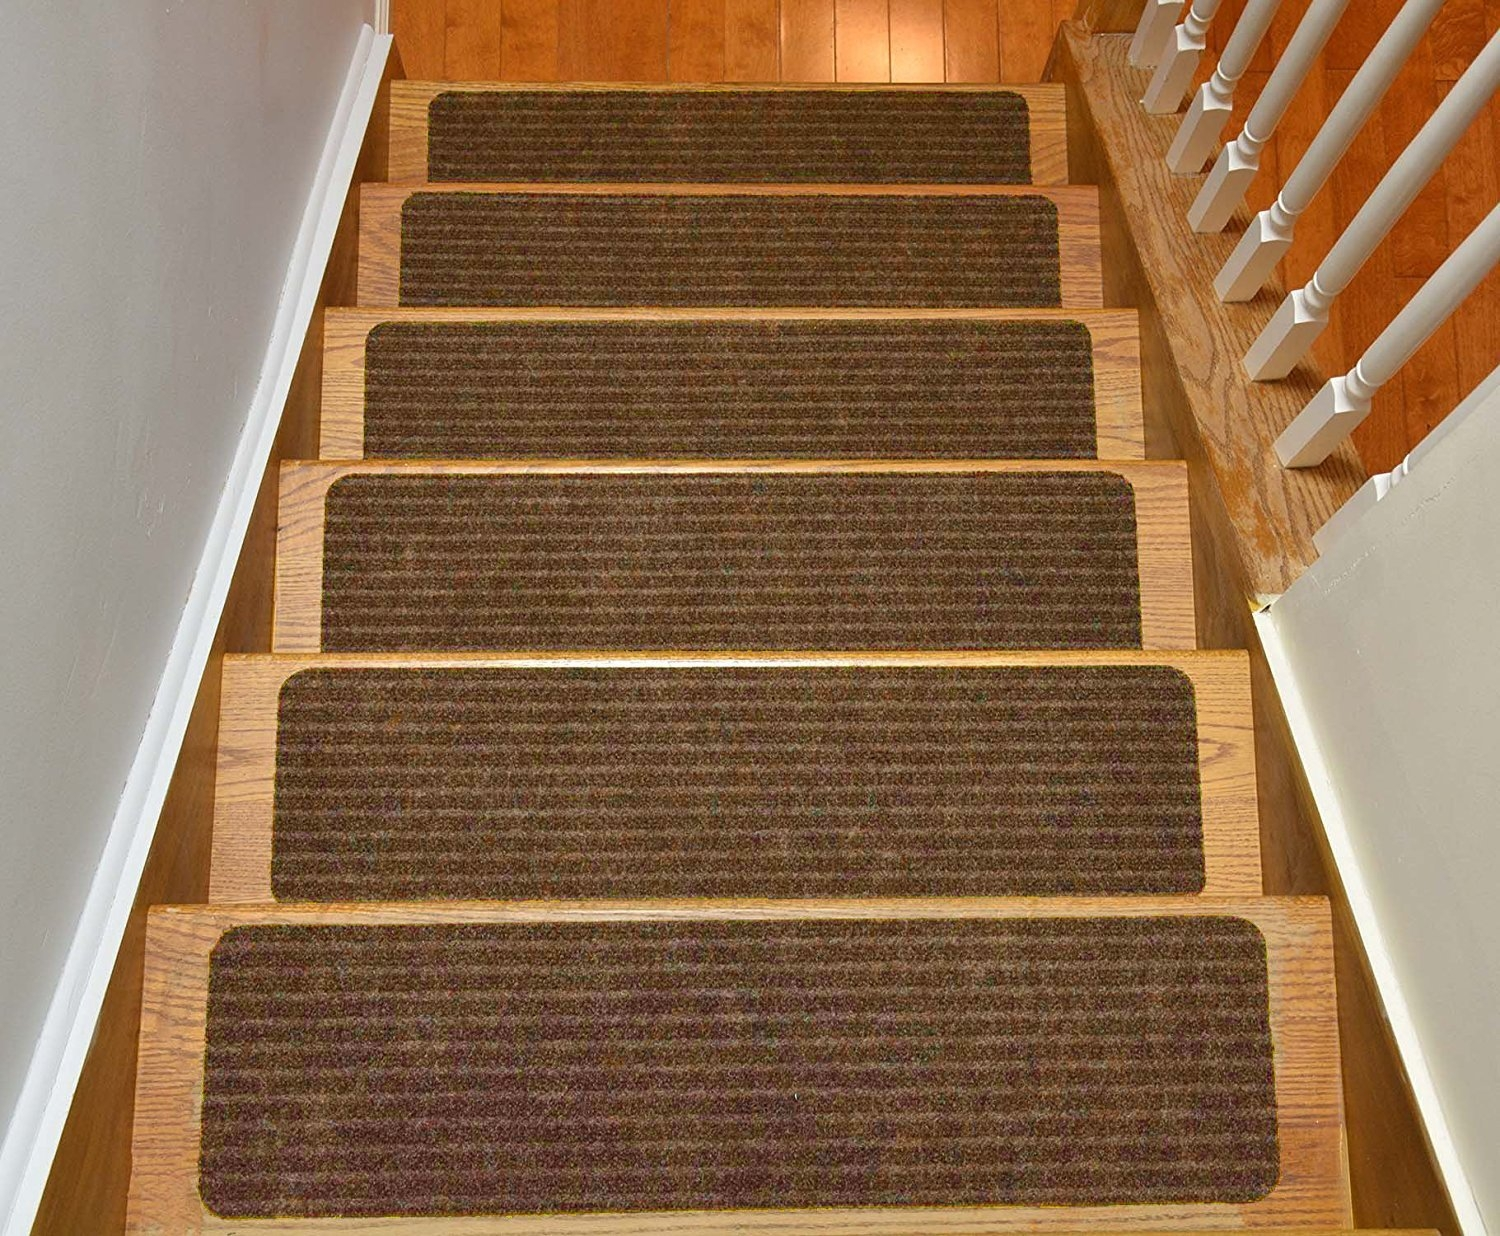 Stair Treads Collection Set Of 13 Indoor Skid Slip Resistant Brown Pertaining To Skid Resistant Stair Treads (#20 of 20)